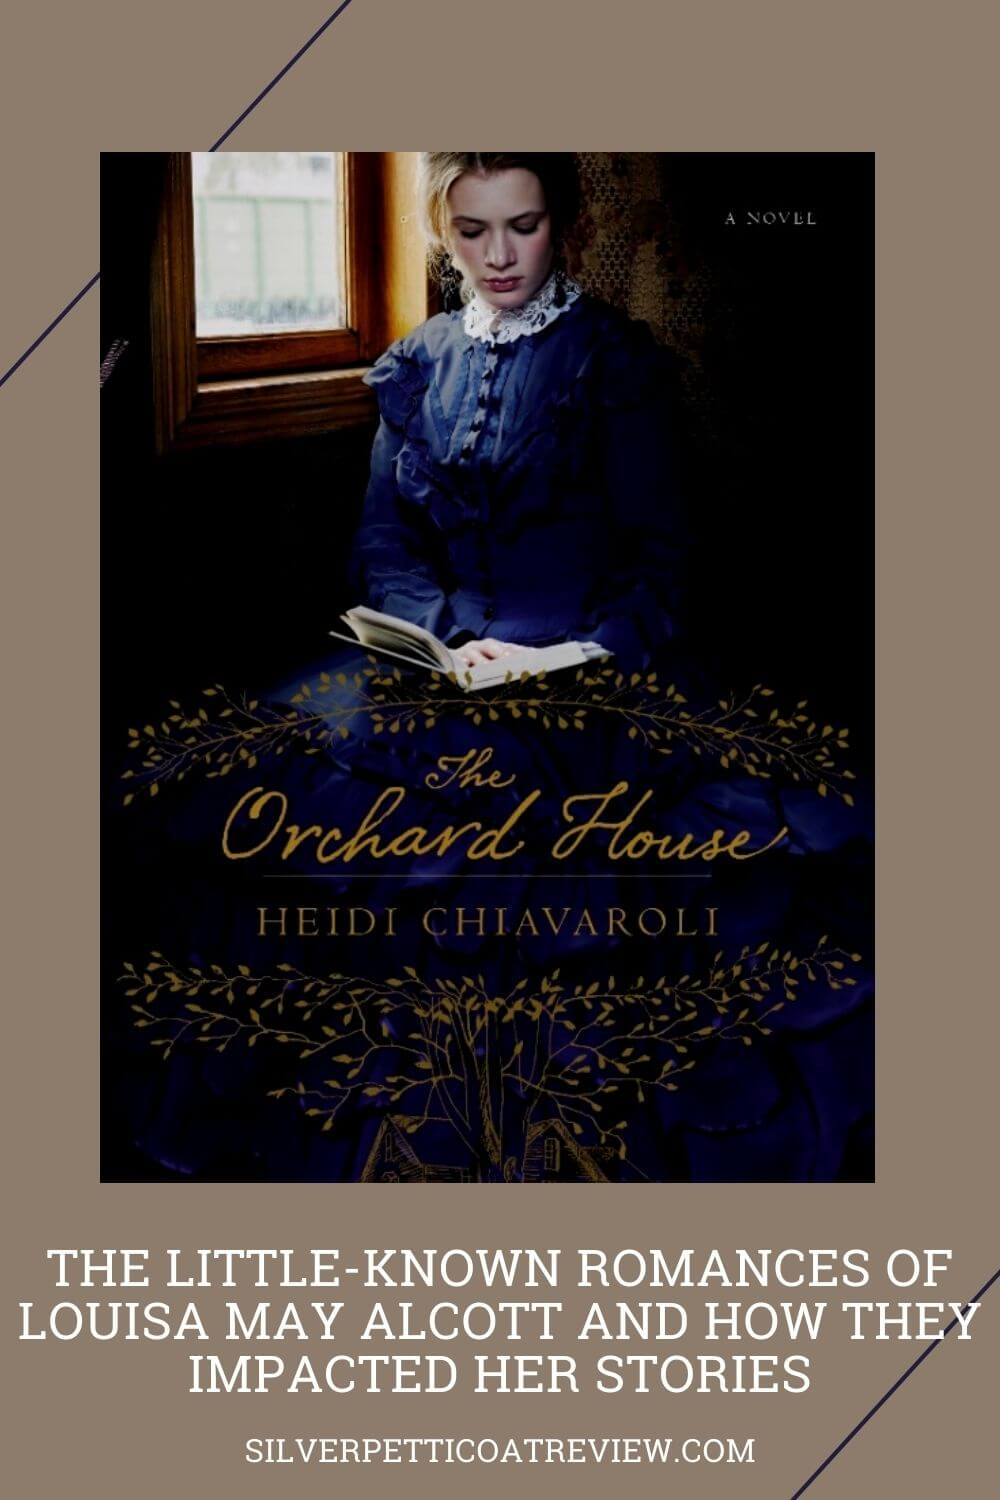 The Little-Known Romances of Louisa May Alcott and How They Impacted Her Stories; Pinterest image